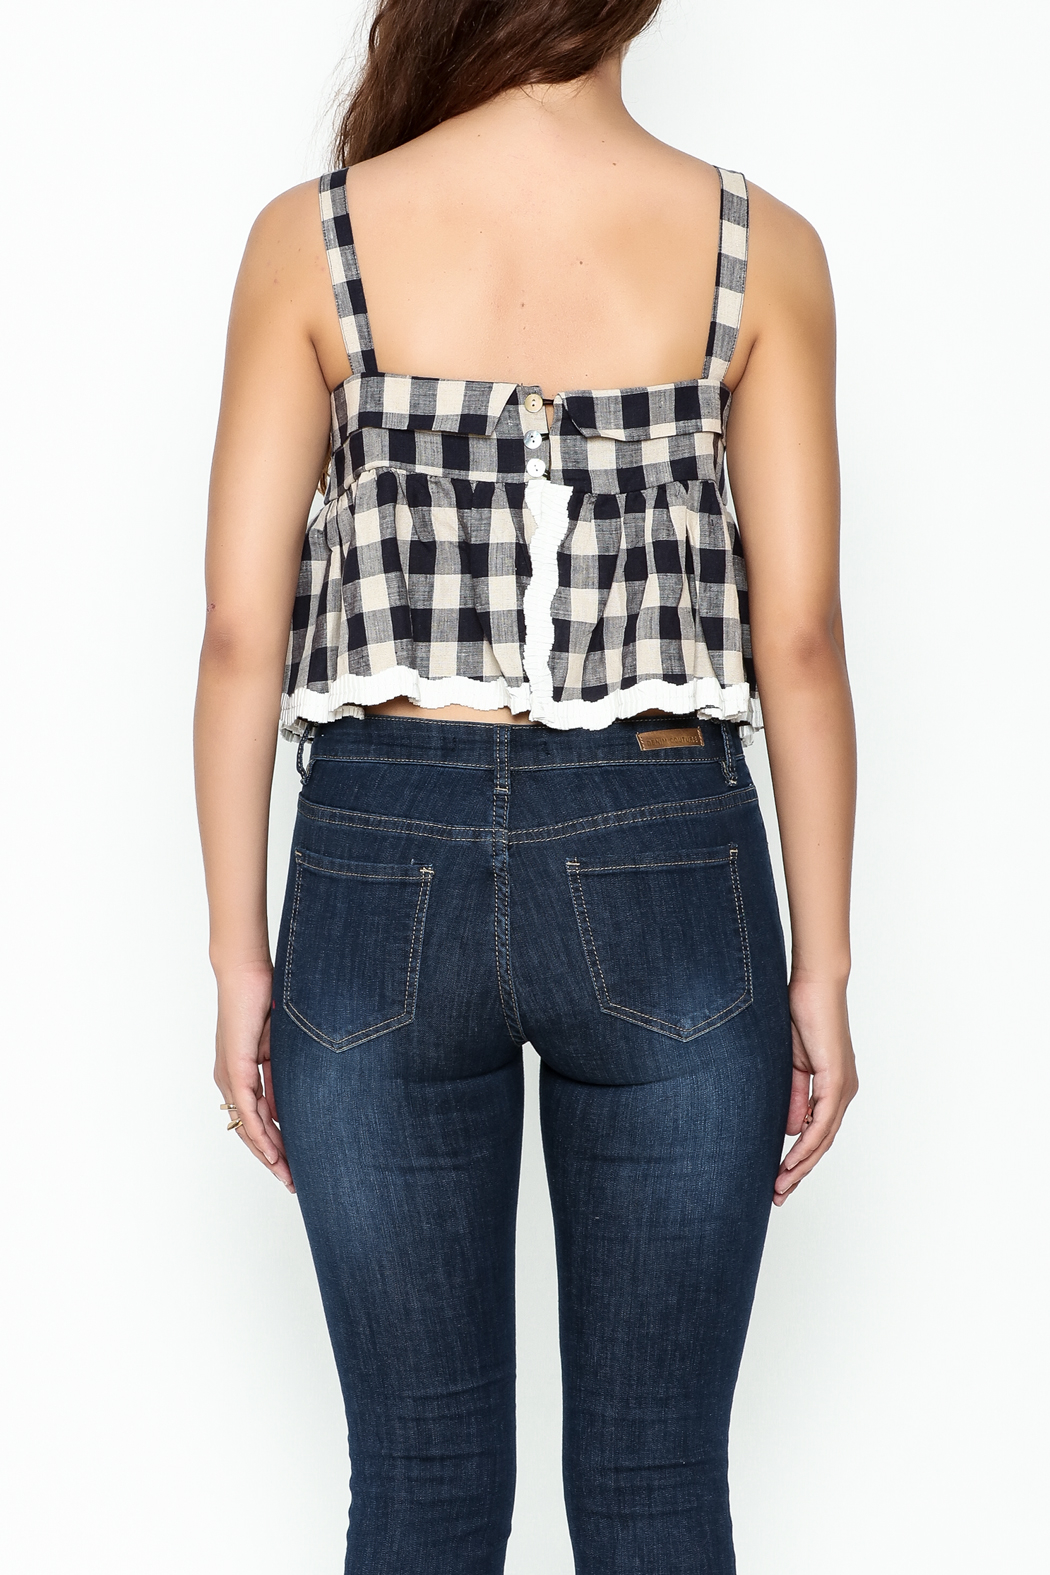 POL Plaid Crop Top - Back Cropped Image